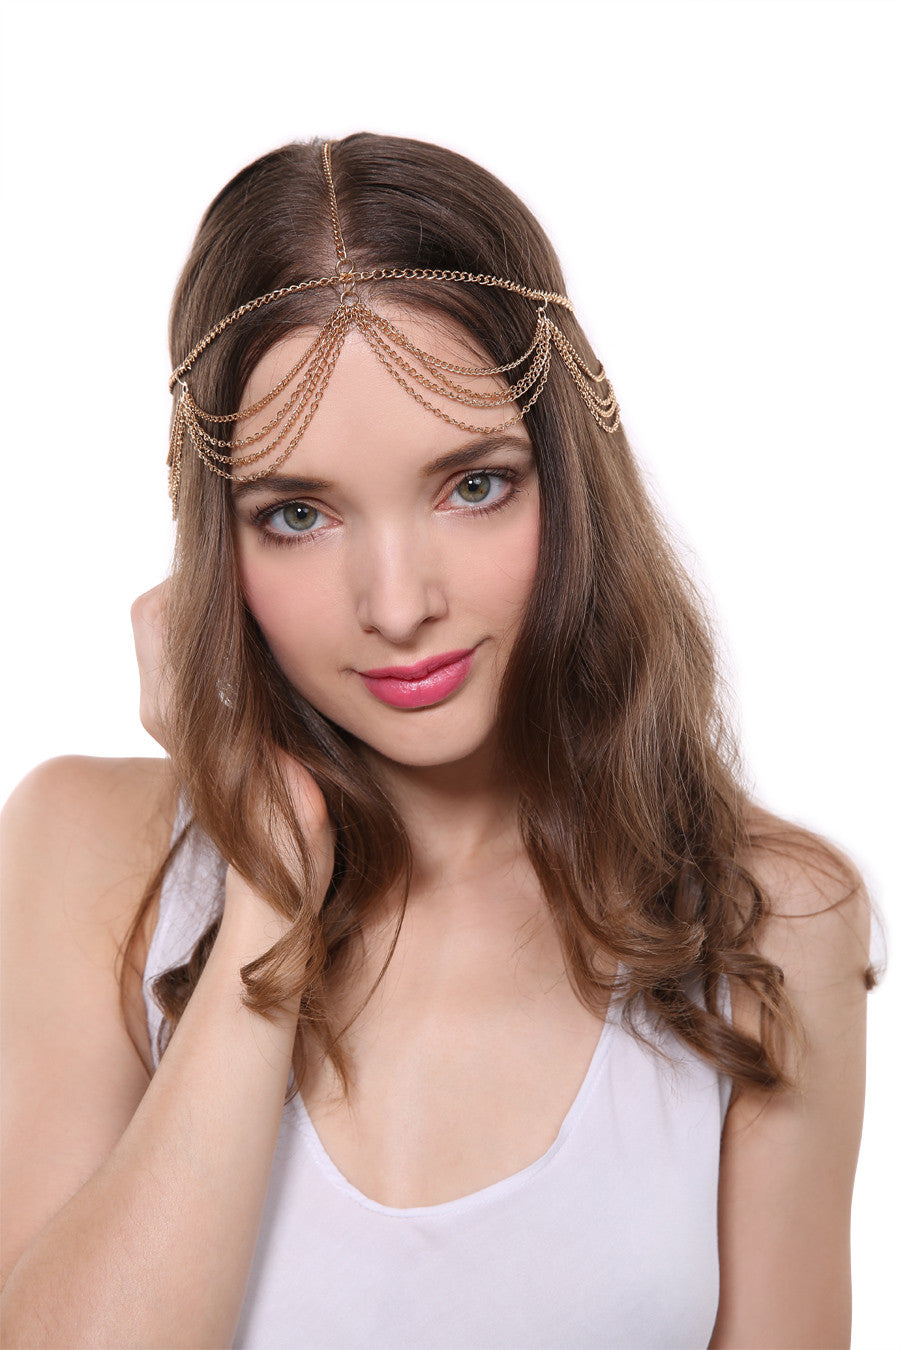 20's Layered Golden Hair Crown